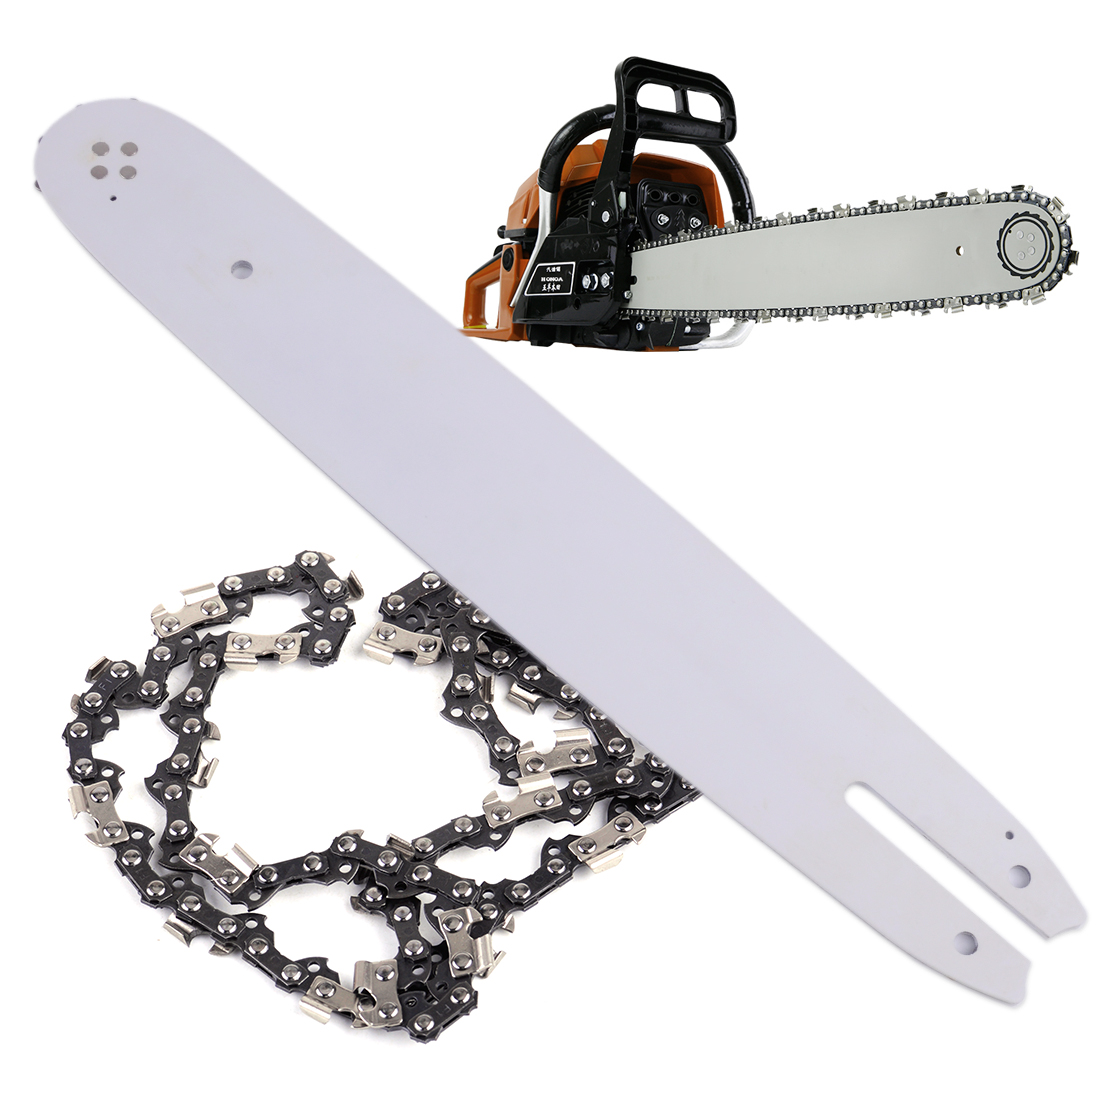 LETAOSK New 14 Chainsaw Guide Bar And Saw Chain Combo 3/8 LP 050 50DL Fit For Stihl MS170 MS180 MS181 MS190 4pcs 20 chainsaw guide bar with saw chain 3 8 72dl 63 for stihl ms290 ms291 310 340 360 361 361c power tools accessories